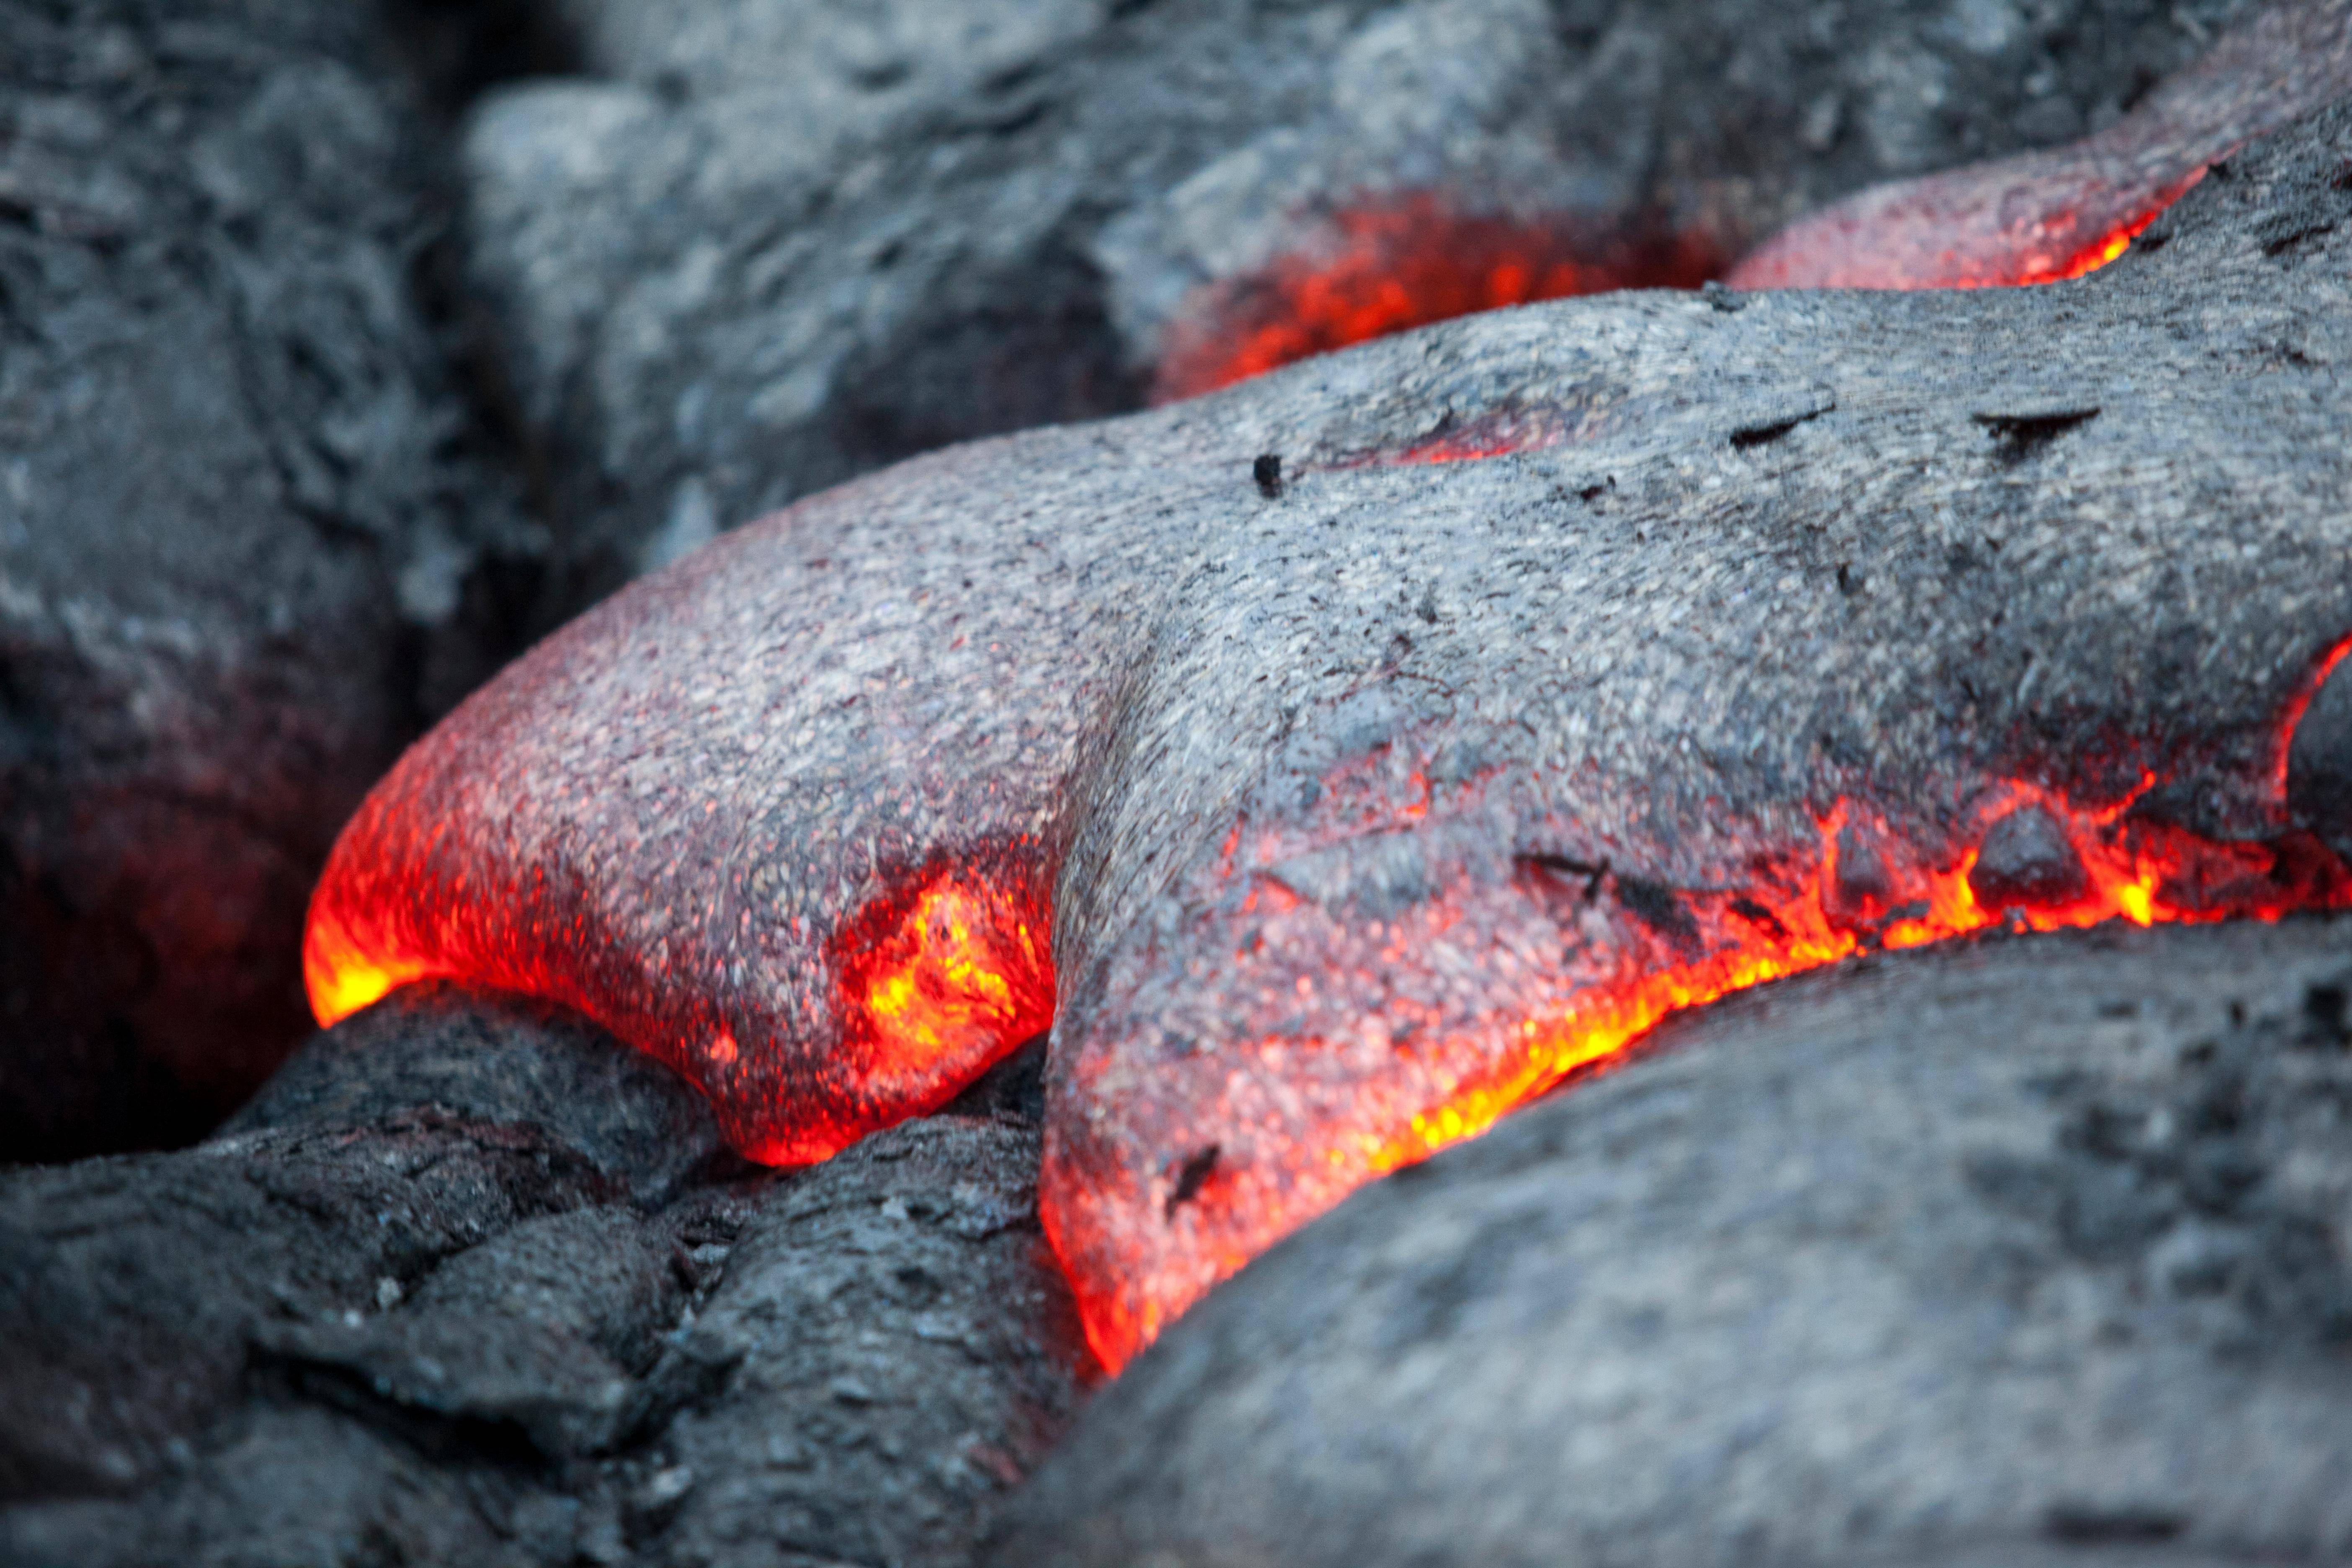 Wallpapers : lava, red, nature, rock 5616x3744